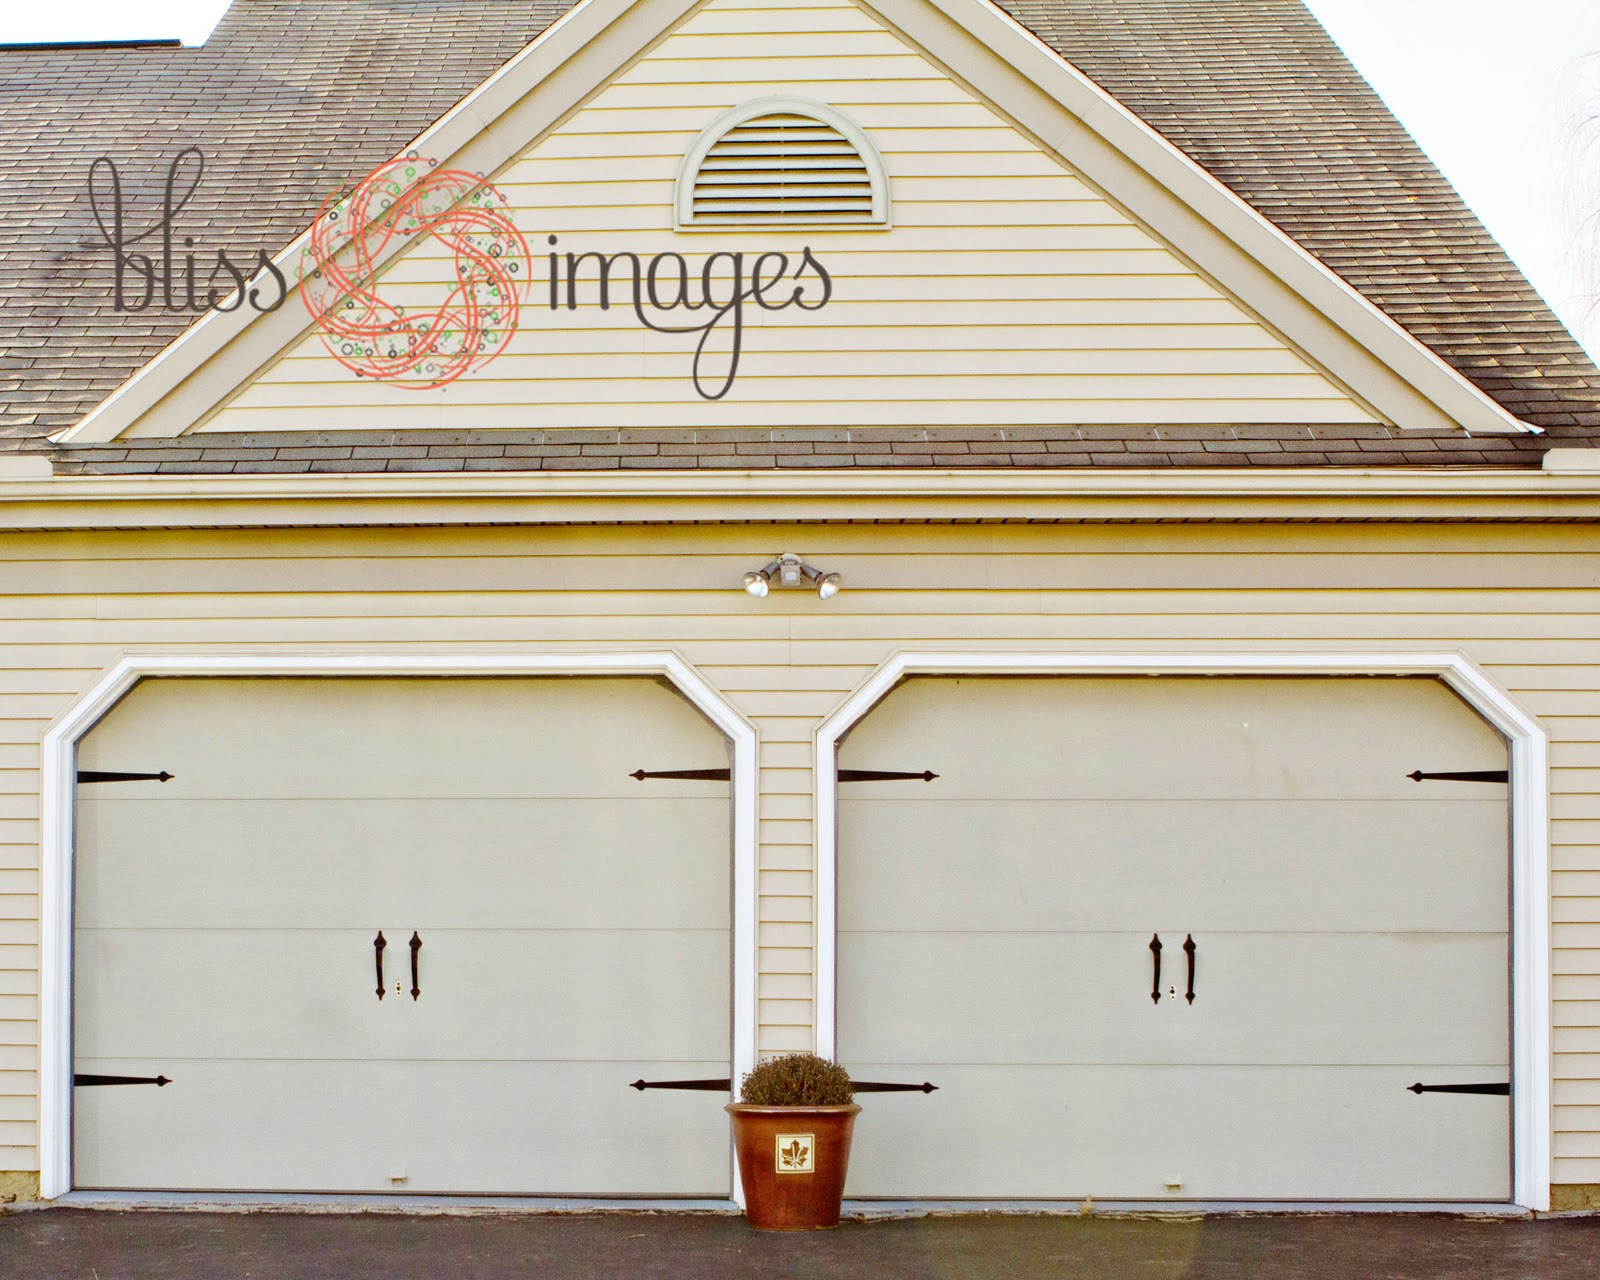 Bliss images and beyond new garage doors rubansaba